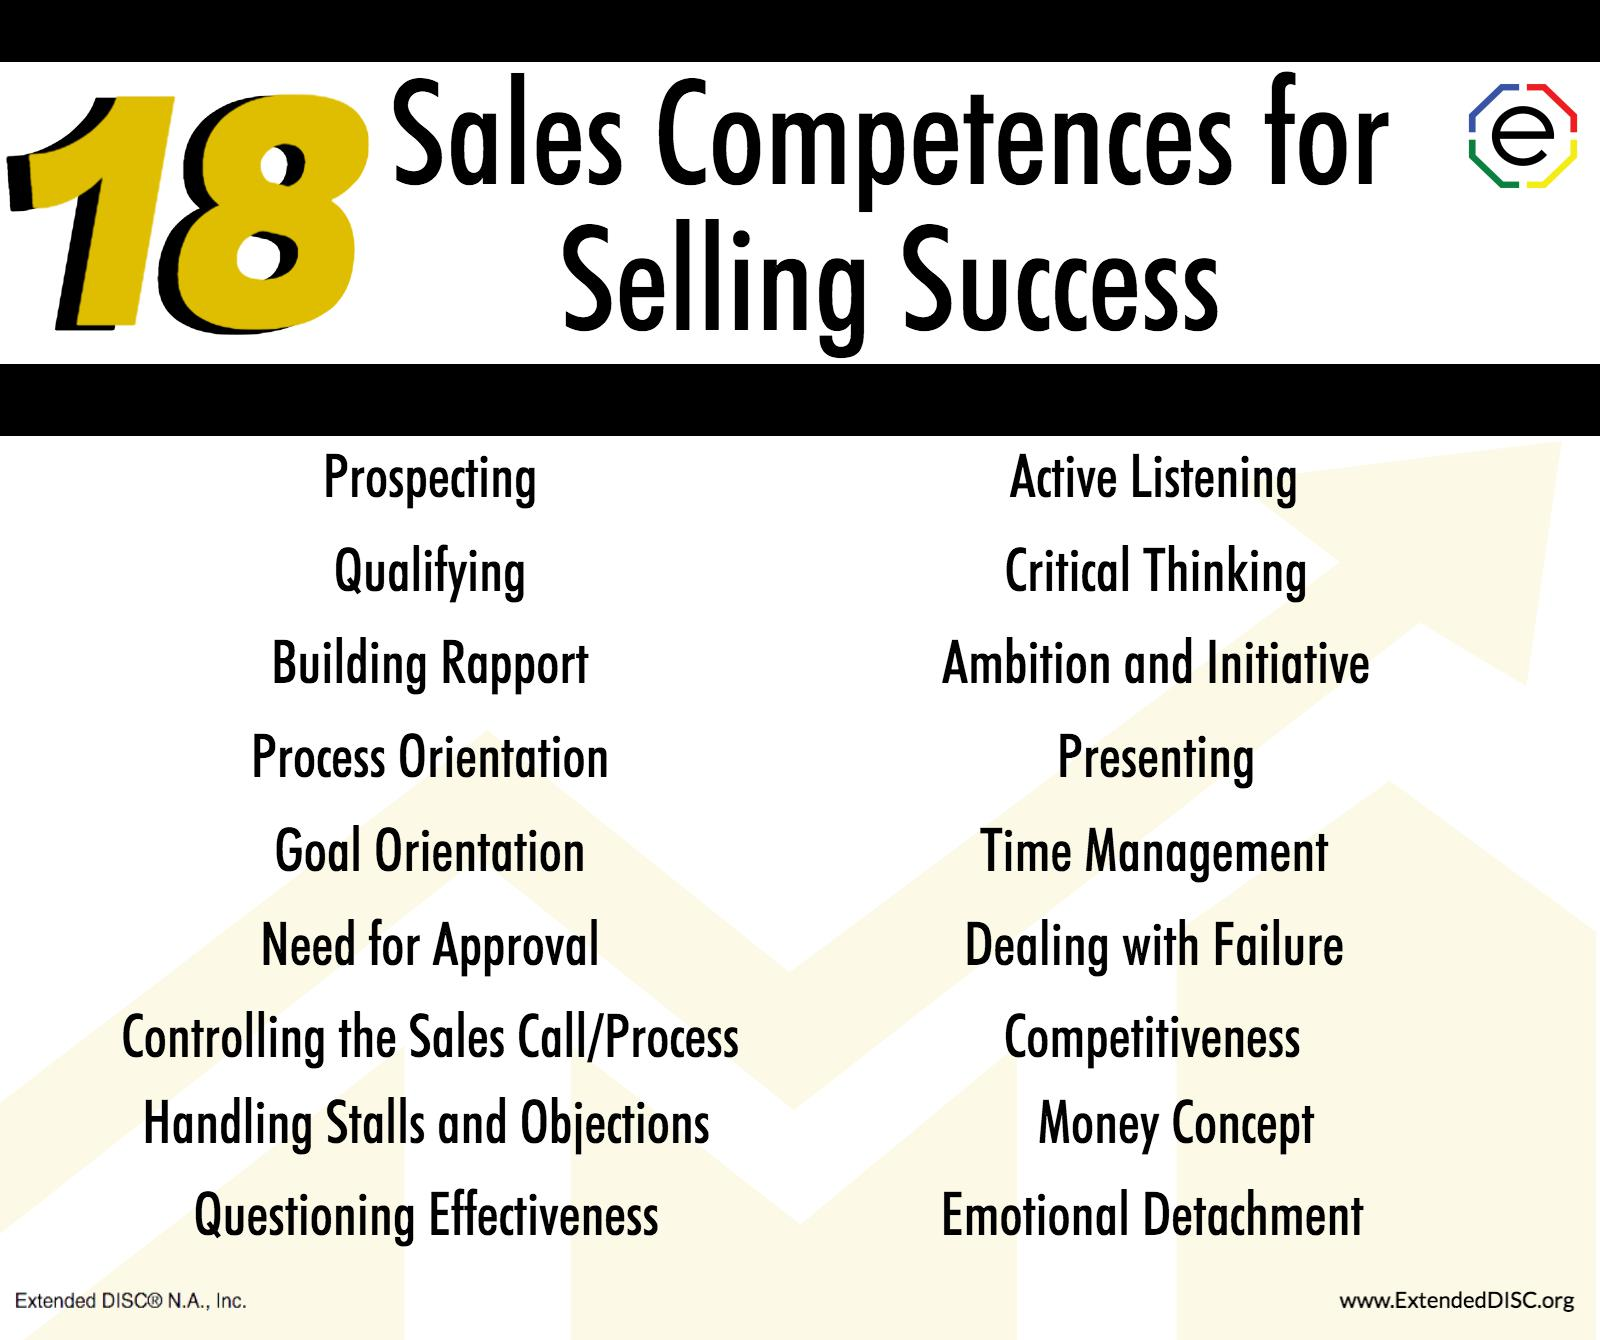 New Sales Assessments: 18 Sales Competences for Sales Success